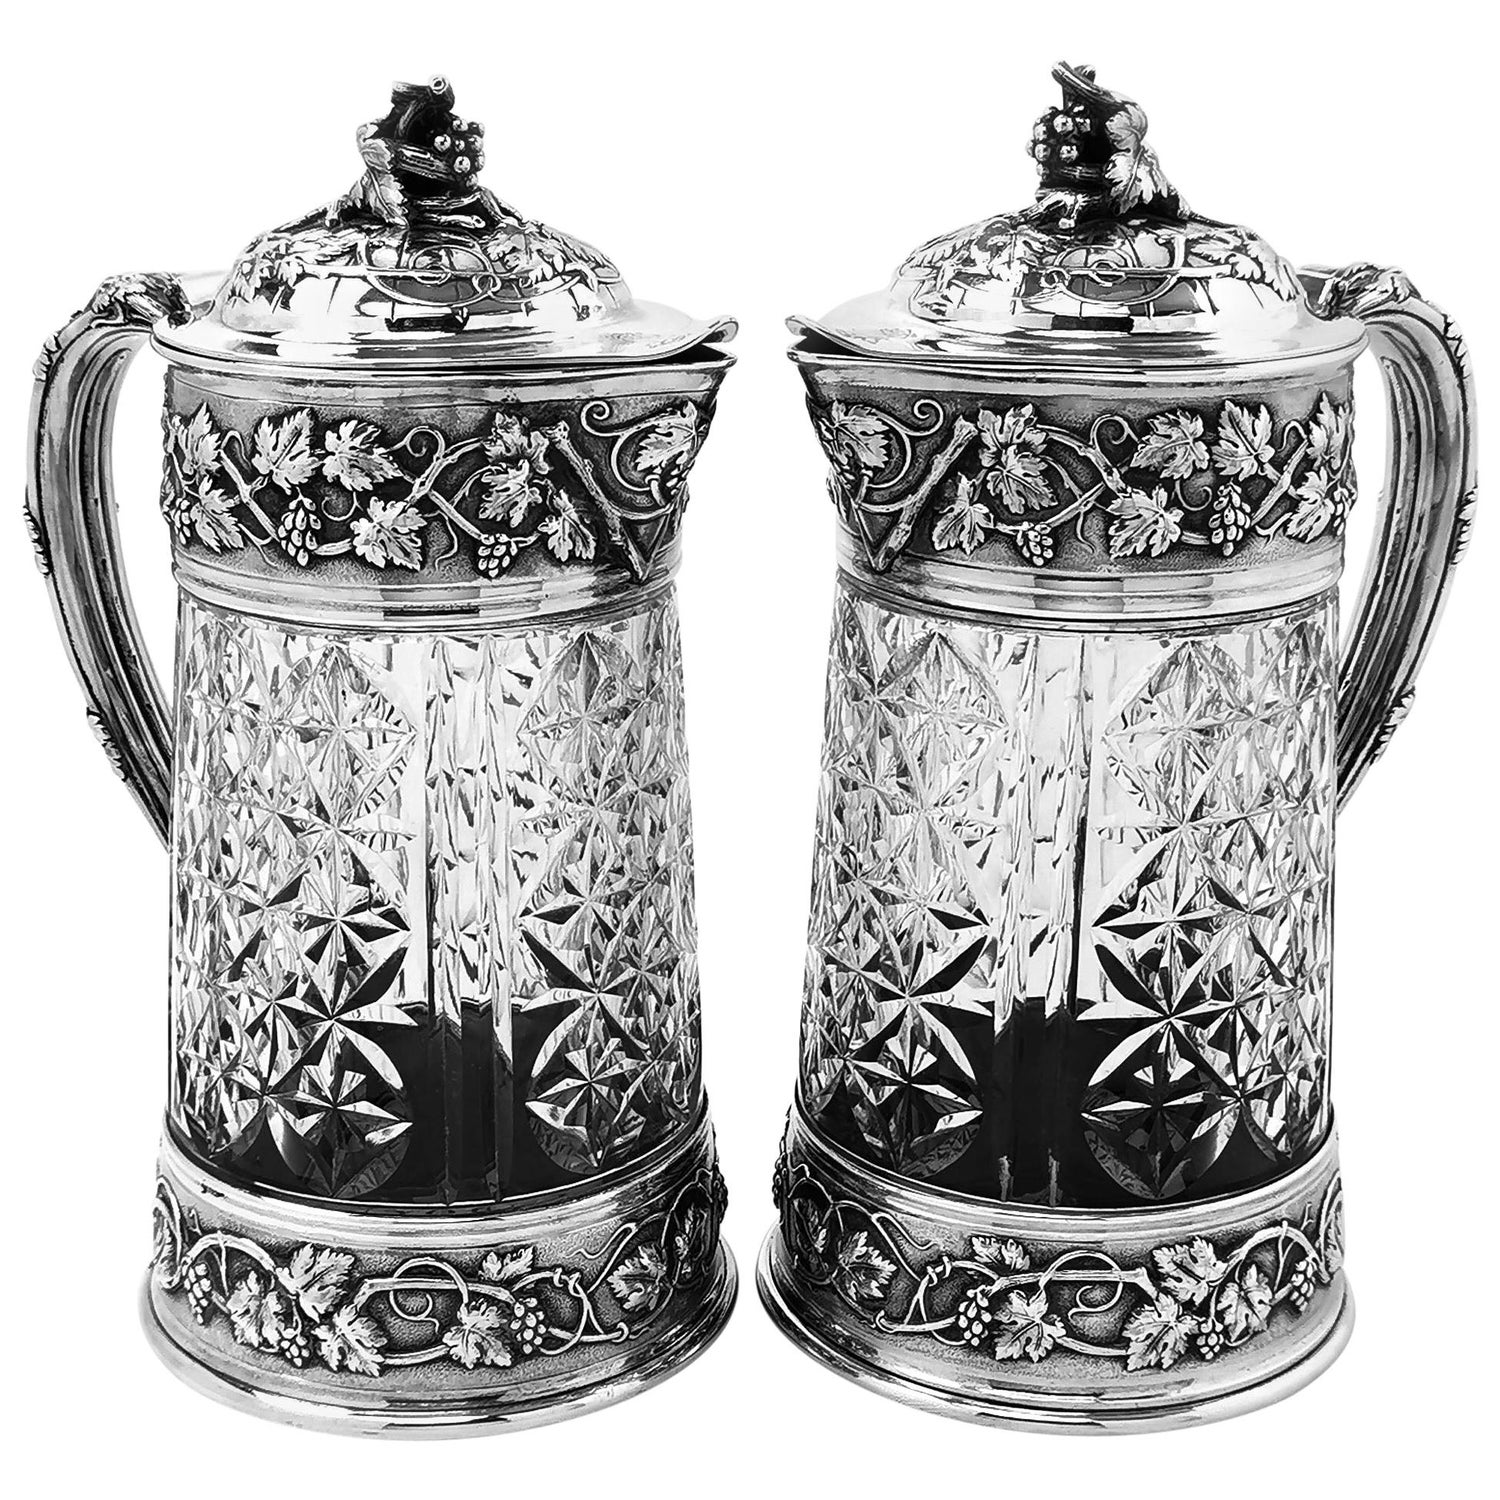 Pair of Antique French Silver and Glass Claret Jugs / Wine Decanters by Odiot